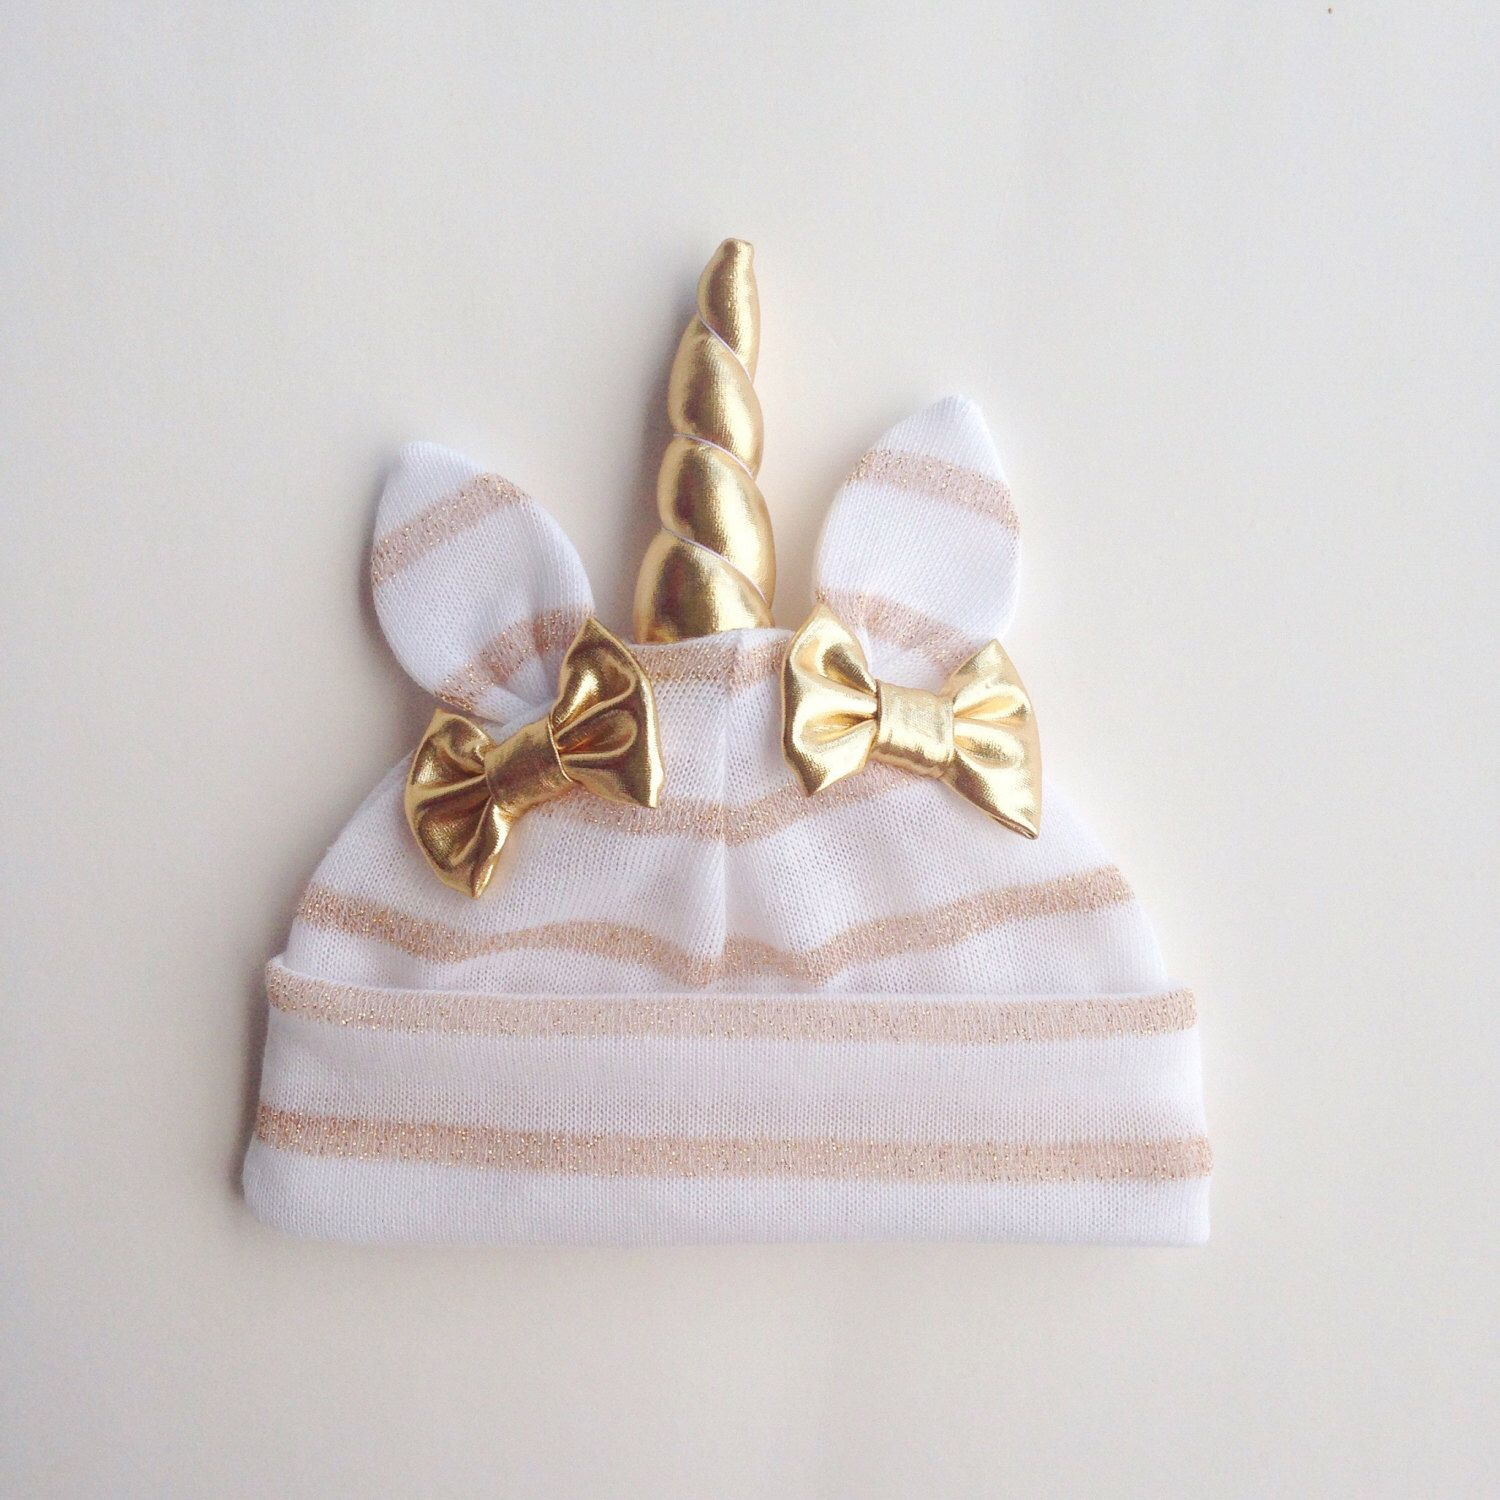 accessories bow headband knot polka old accessory newborn baby dot month headbands pin gold girl